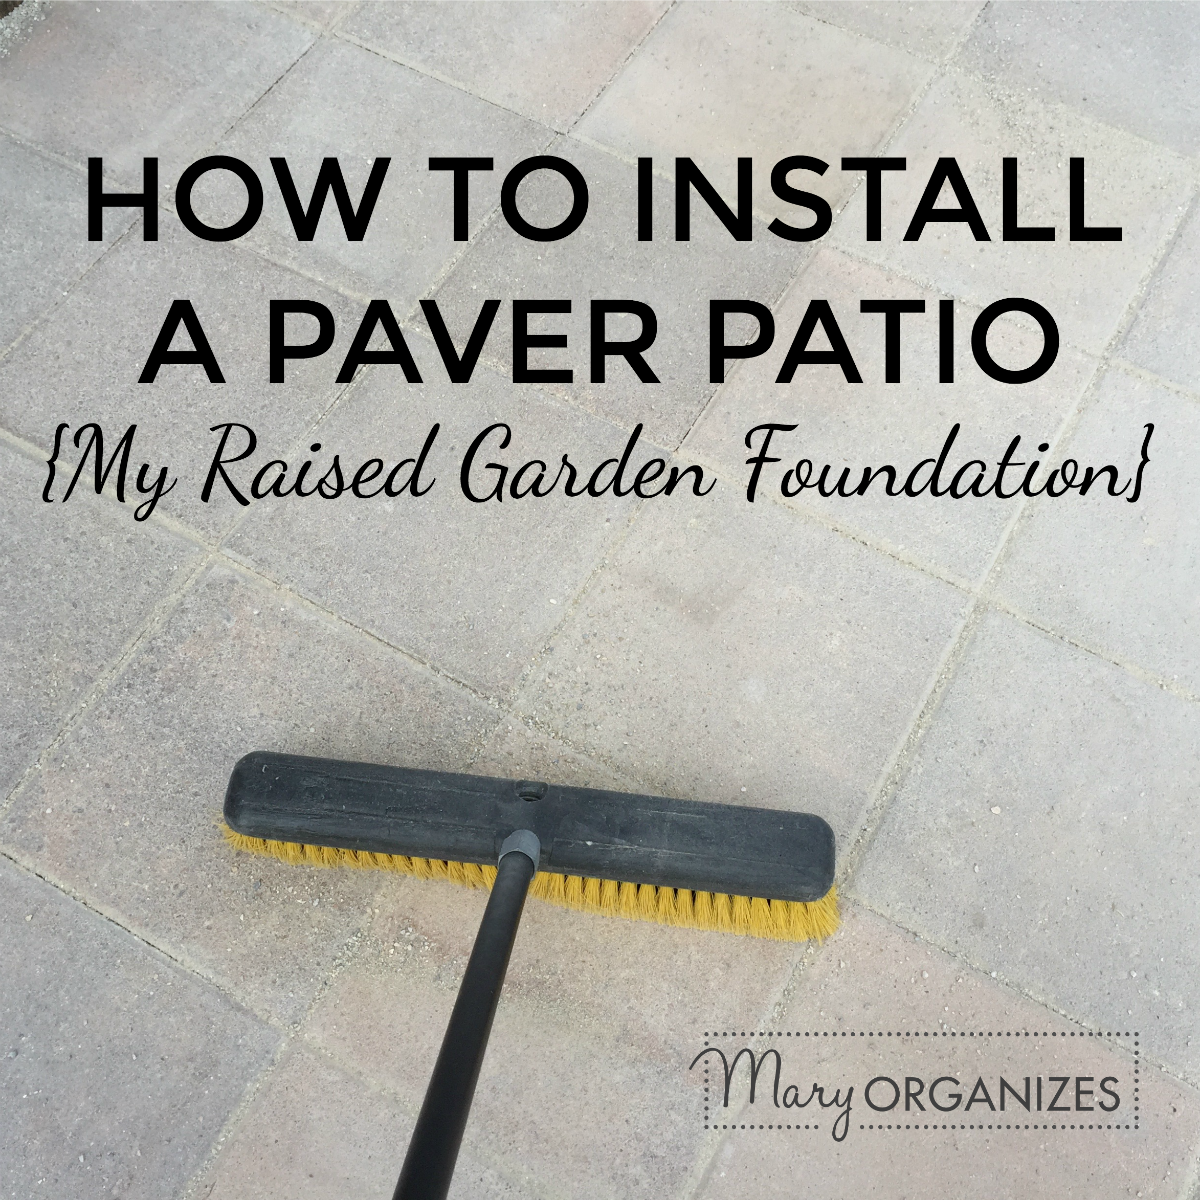 How To Install Paver Patio - My Raised Garden Foundation -s